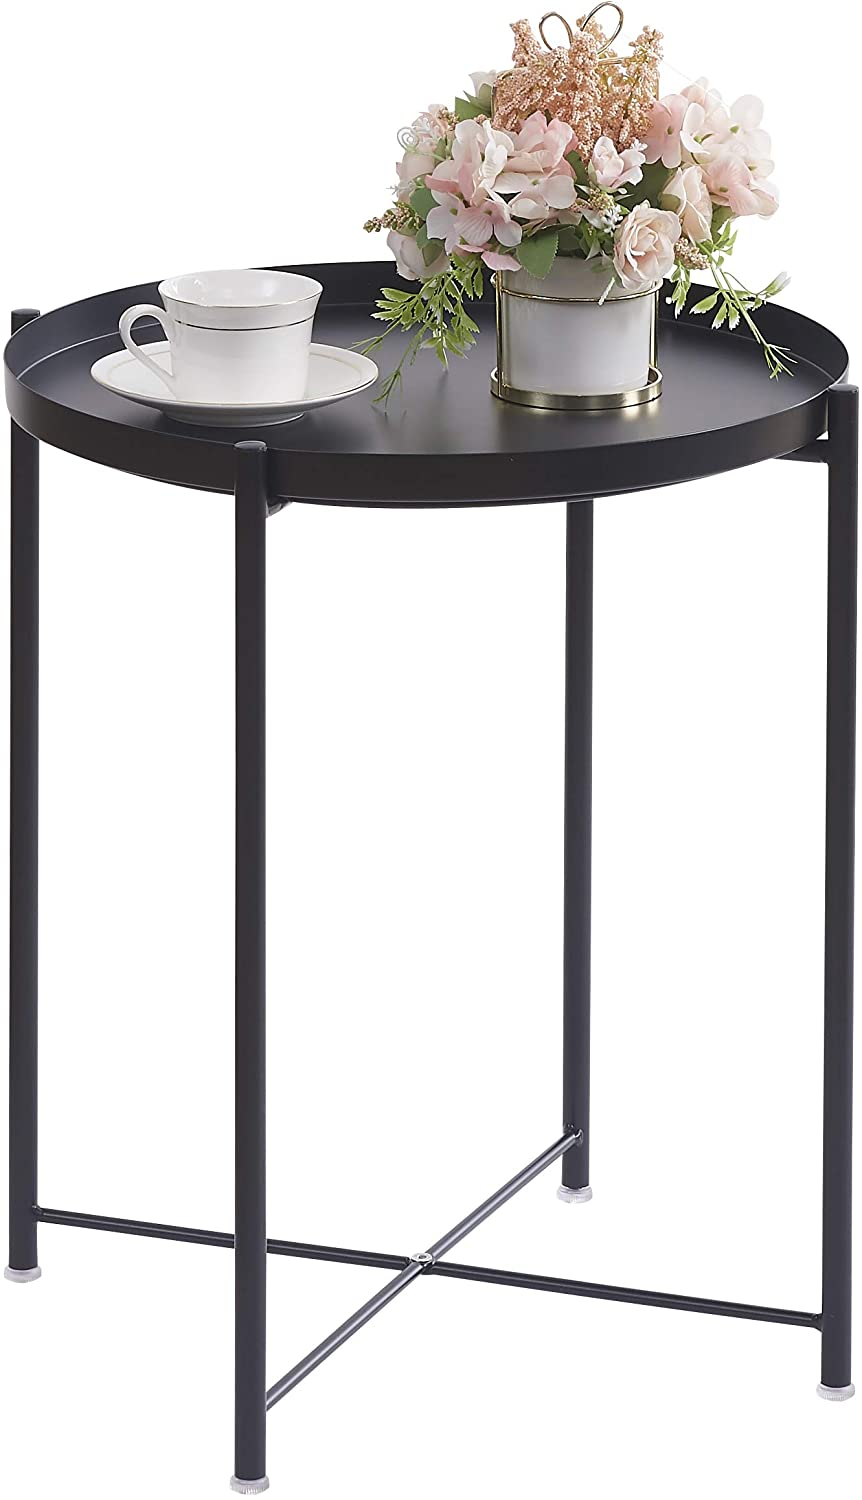 Ovicar Tray Metal End Table, Round Accent Coffee Folding Side Tables, Anti-Rust and Waterproof Small Table, Modern Sofa Side Tables for Living Room Balcony Bedroom and Bedside